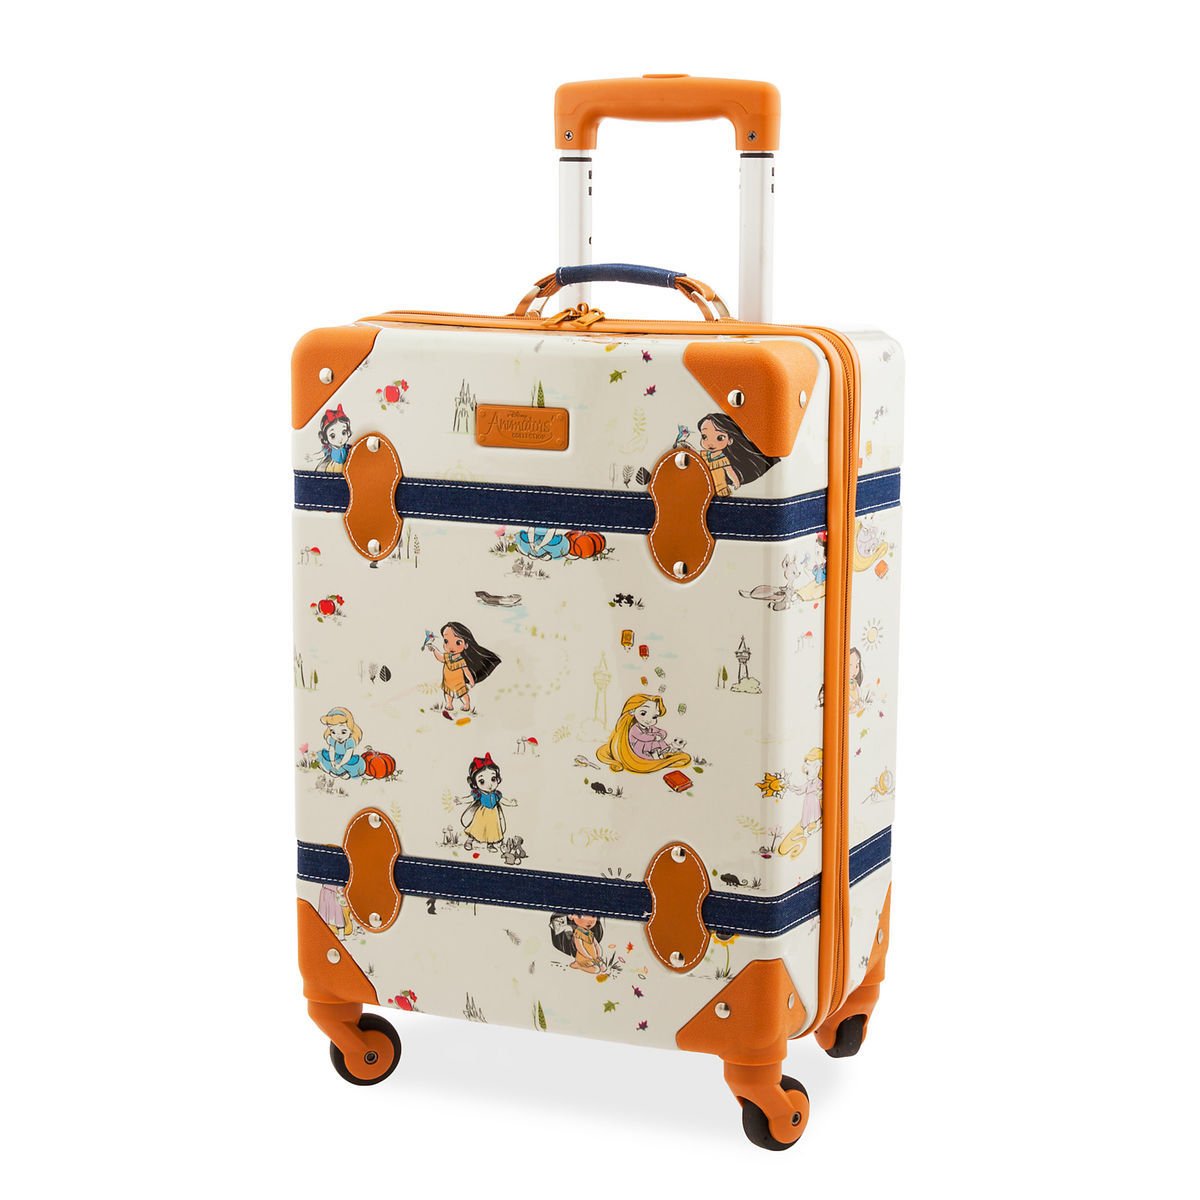 Disney Luggage for Your Summer Vacation 5